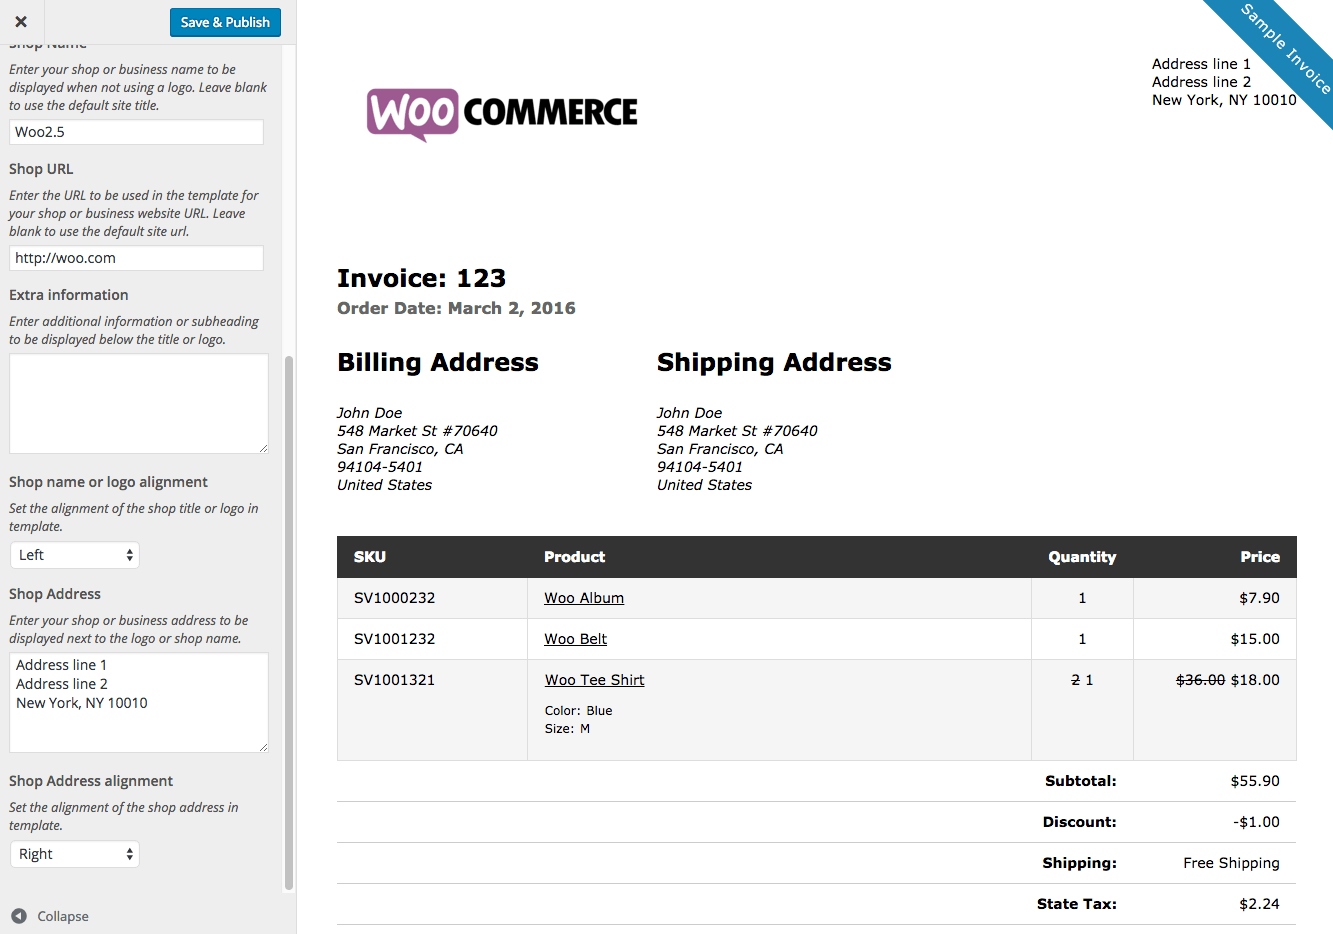 Ultrablogus  Splendid Woocommerce Print Invoices Amp Packing Lists  Woocommerce Docs With Glamorous Woocommerce Print Invoices  Packing Lists Customizer With Agreeable Official Receipt Template Word Also Receipting System In Addition Child Care Tax Receipt And Professional Receipts As Well As Online Receipt Maker Free Additionally Accounting Cash Receipts From Docswoocommercecom With Ultrablogus  Glamorous Woocommerce Print Invoices Amp Packing Lists  Woocommerce Docs With Agreeable Woocommerce Print Invoices  Packing Lists Customizer And Splendid Official Receipt Template Word Also Receipting System In Addition Child Care Tax Receipt From Docswoocommercecom